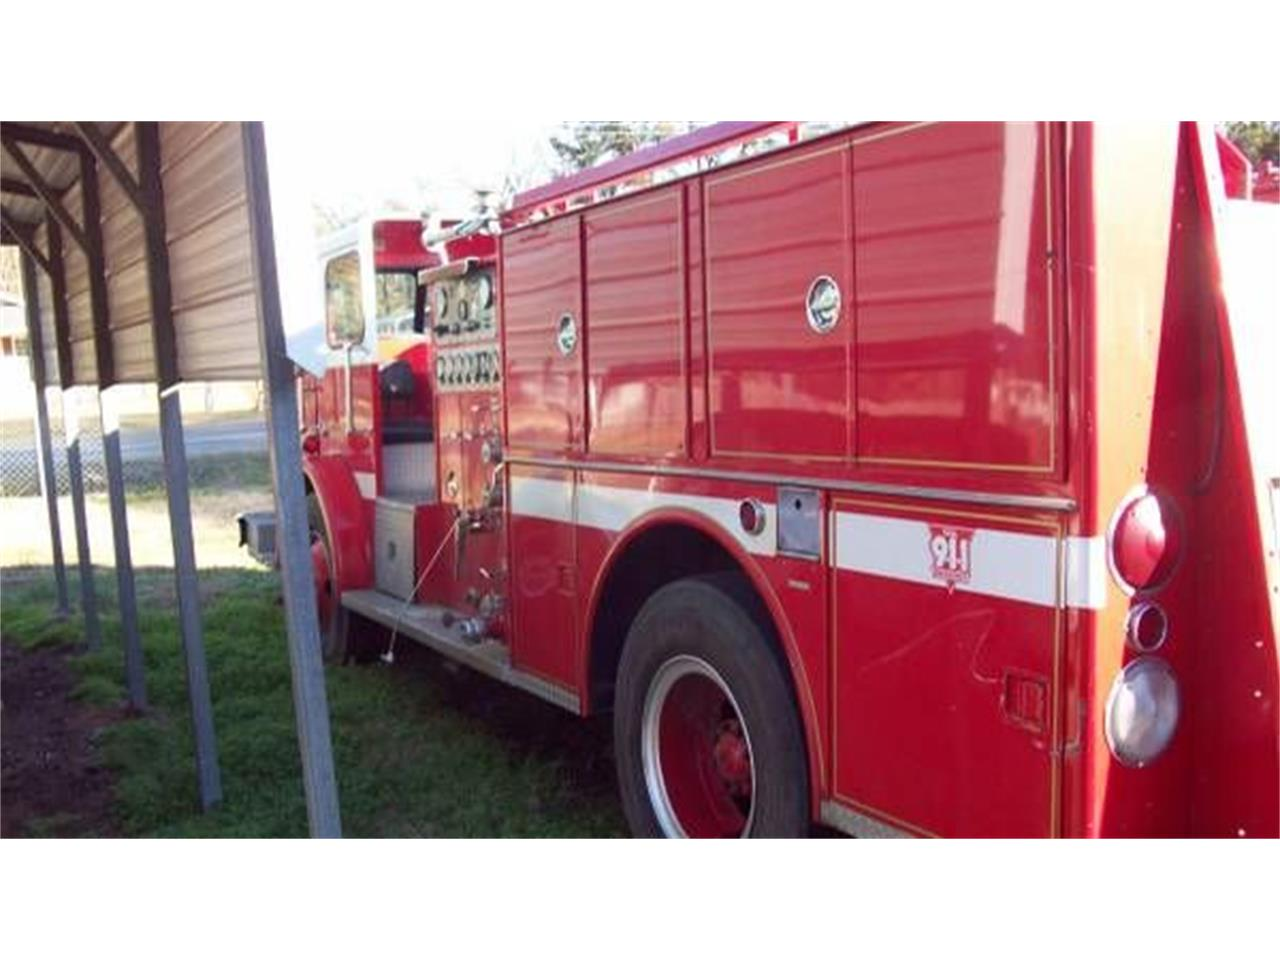 1977 Seagrave Fire Truck for sale in Cadillac, MI – photo 4